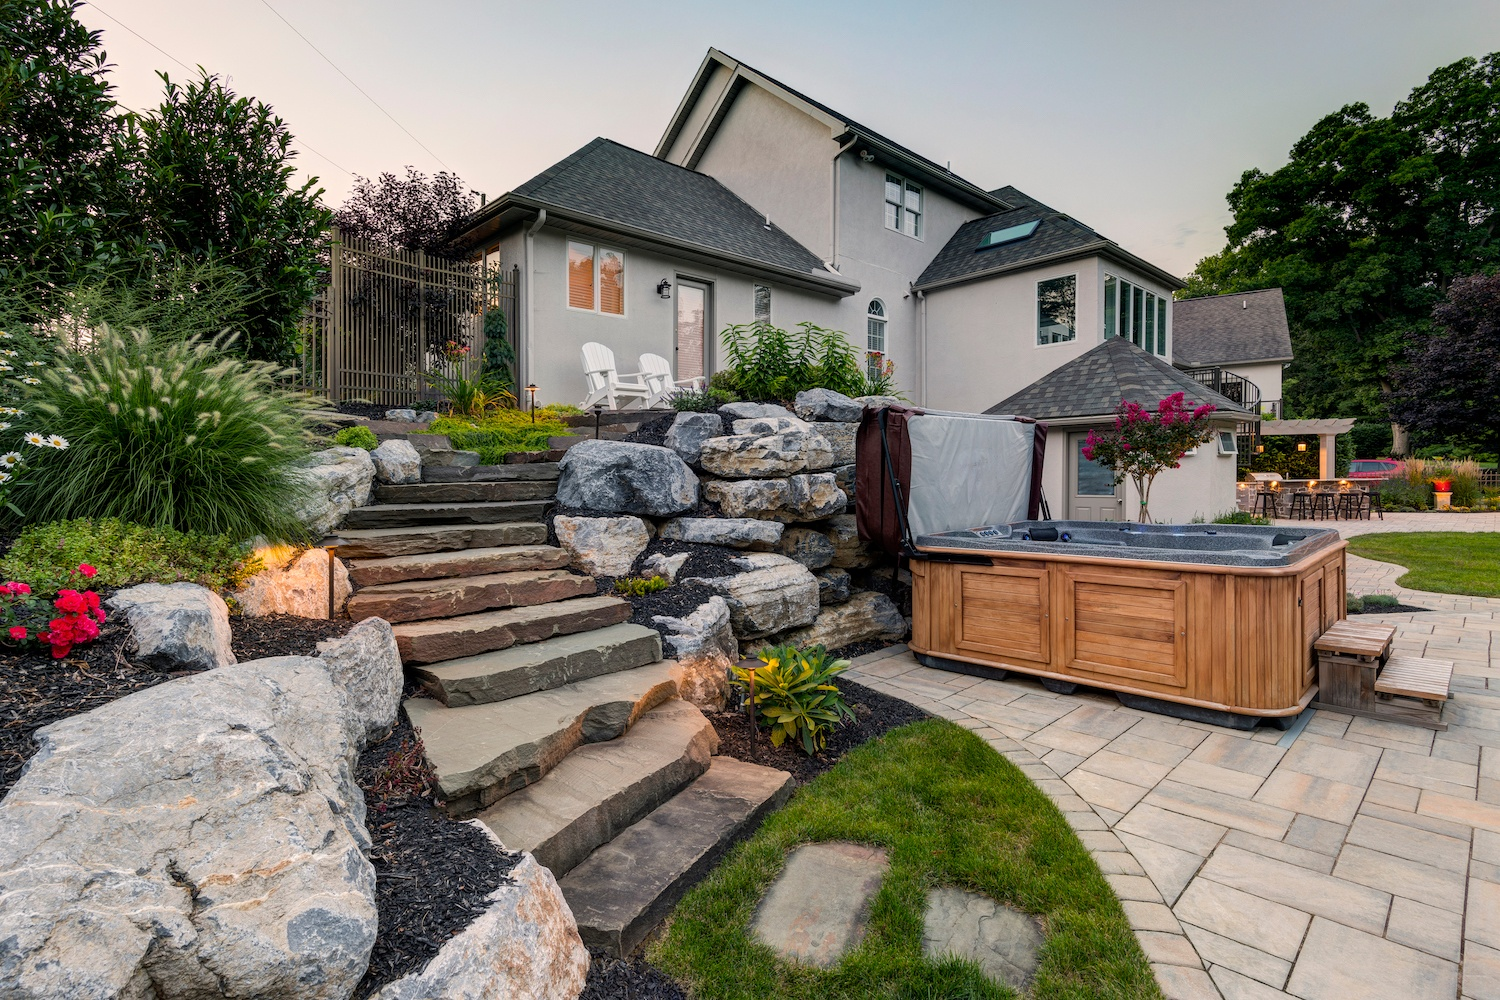 6 Questions to Ask Yourself Before a Landscape Design Consultation